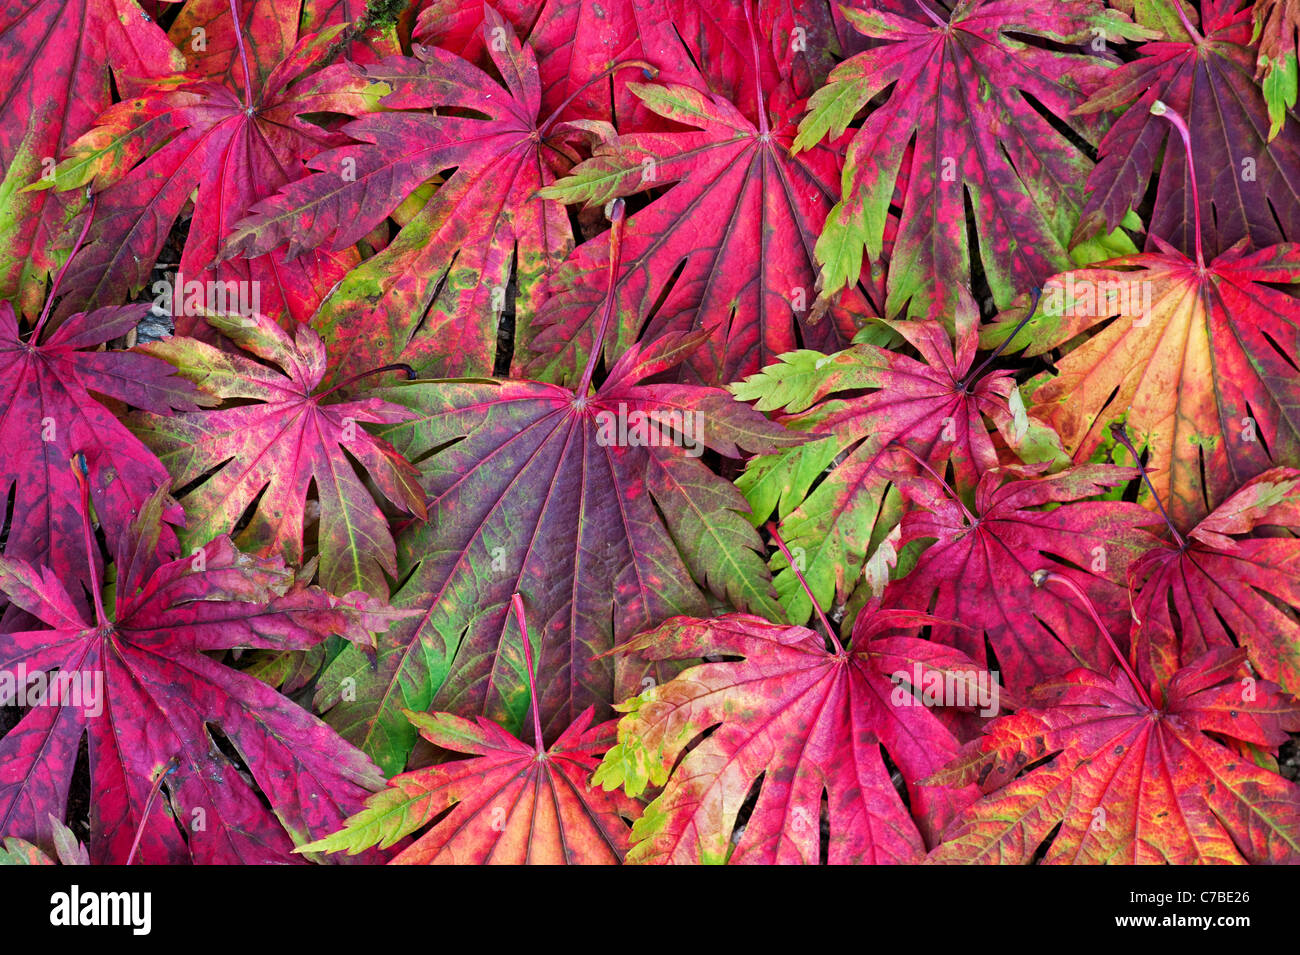 Acer Japonicum Attaryi leaves. Japanese Maple leaves changing colour in autumn. Red Acer leaf pattern Stock Photo